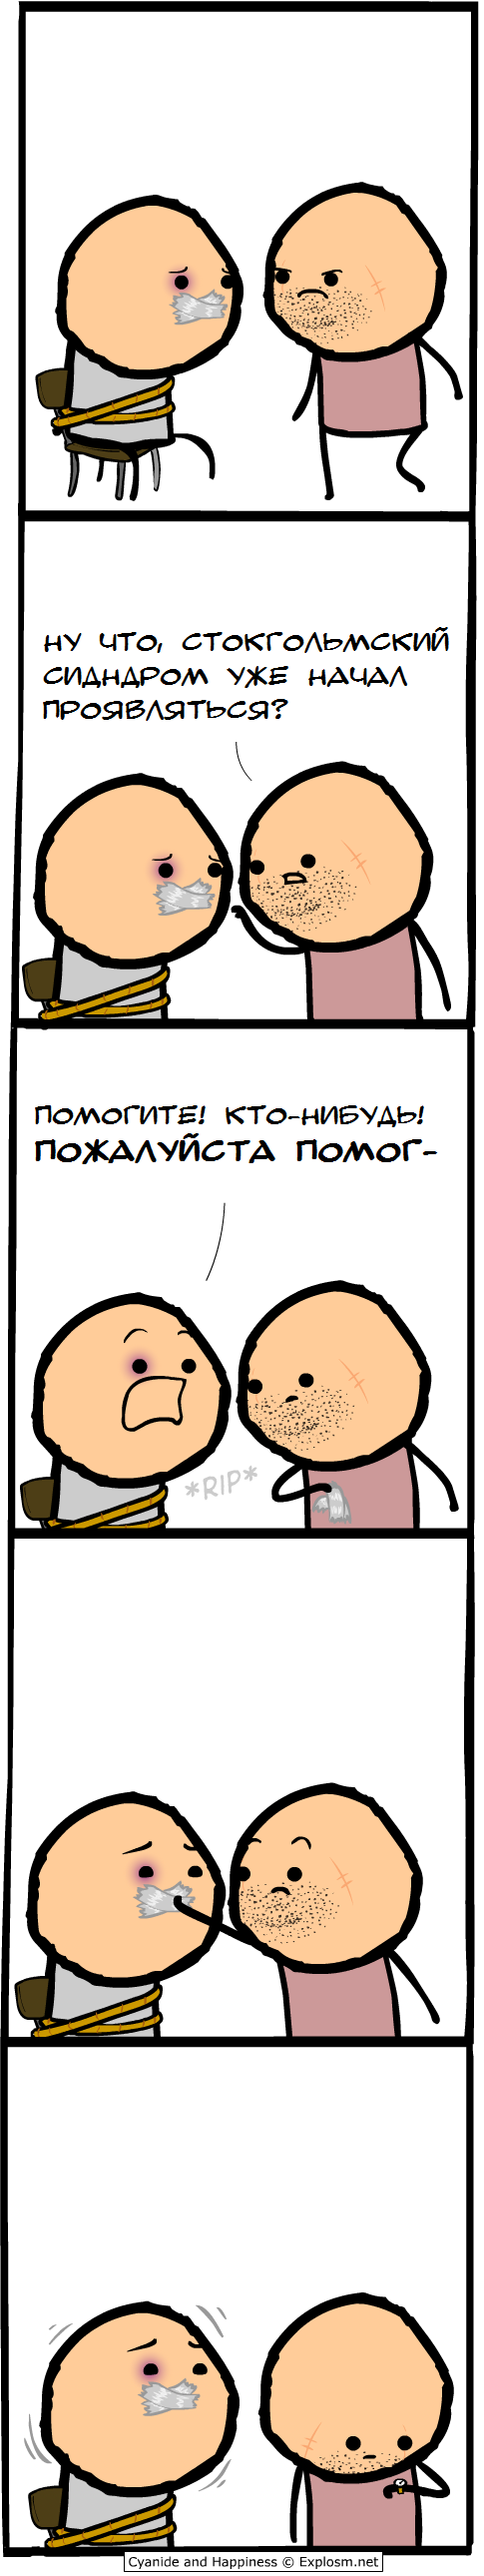 Стокгольмский синдром Cyanide and happiness, заложник, стокгольмский синдром, длиннопост